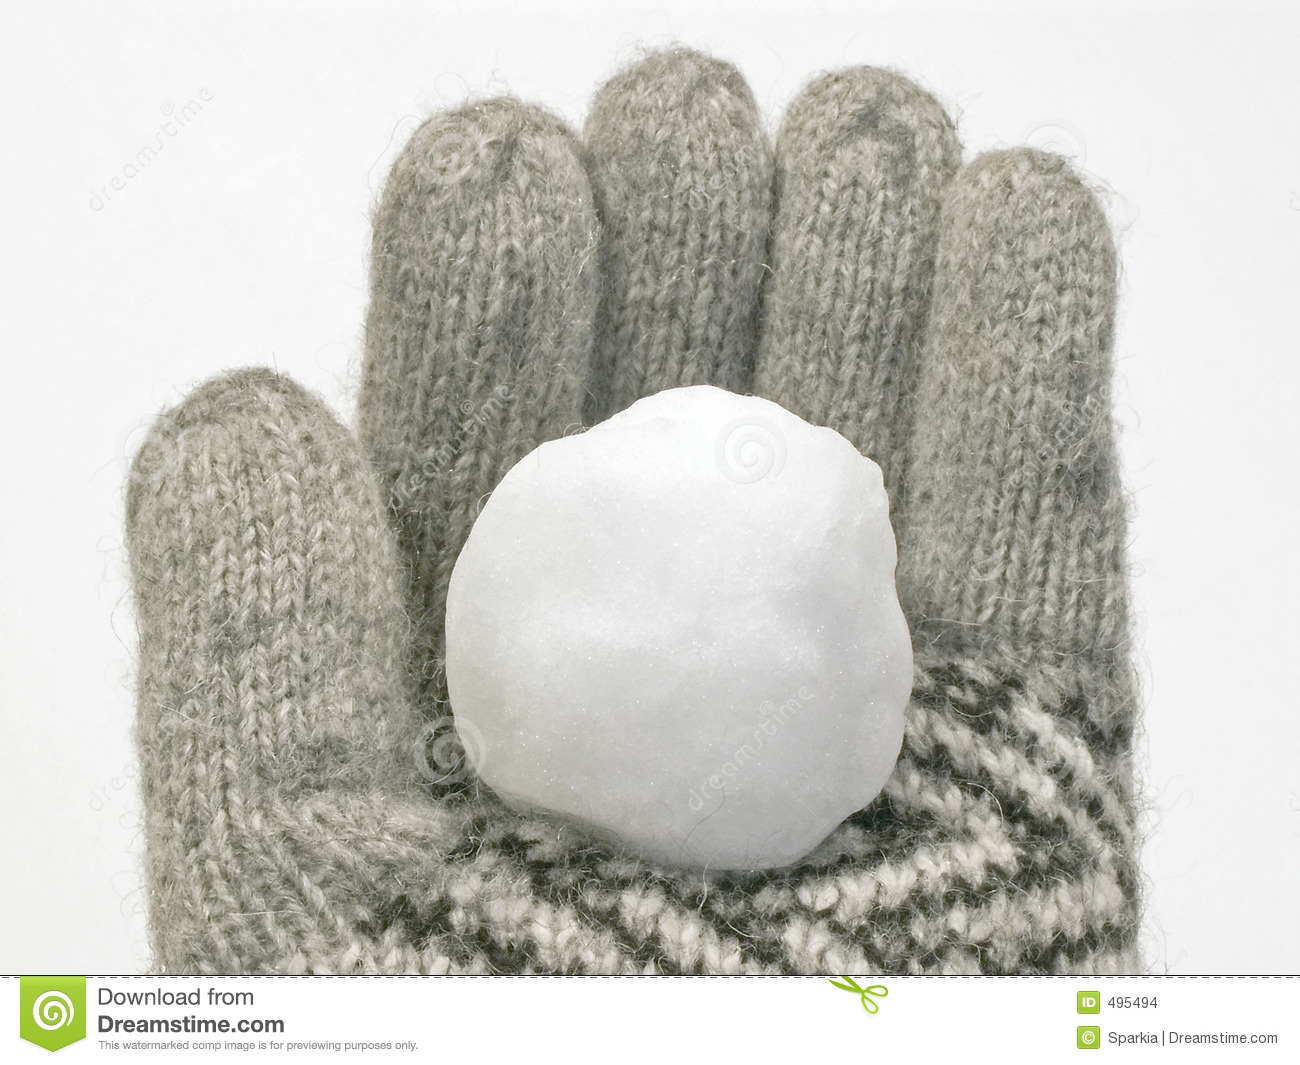 Snowball In Winter Glove Stock Images - Image: 495494